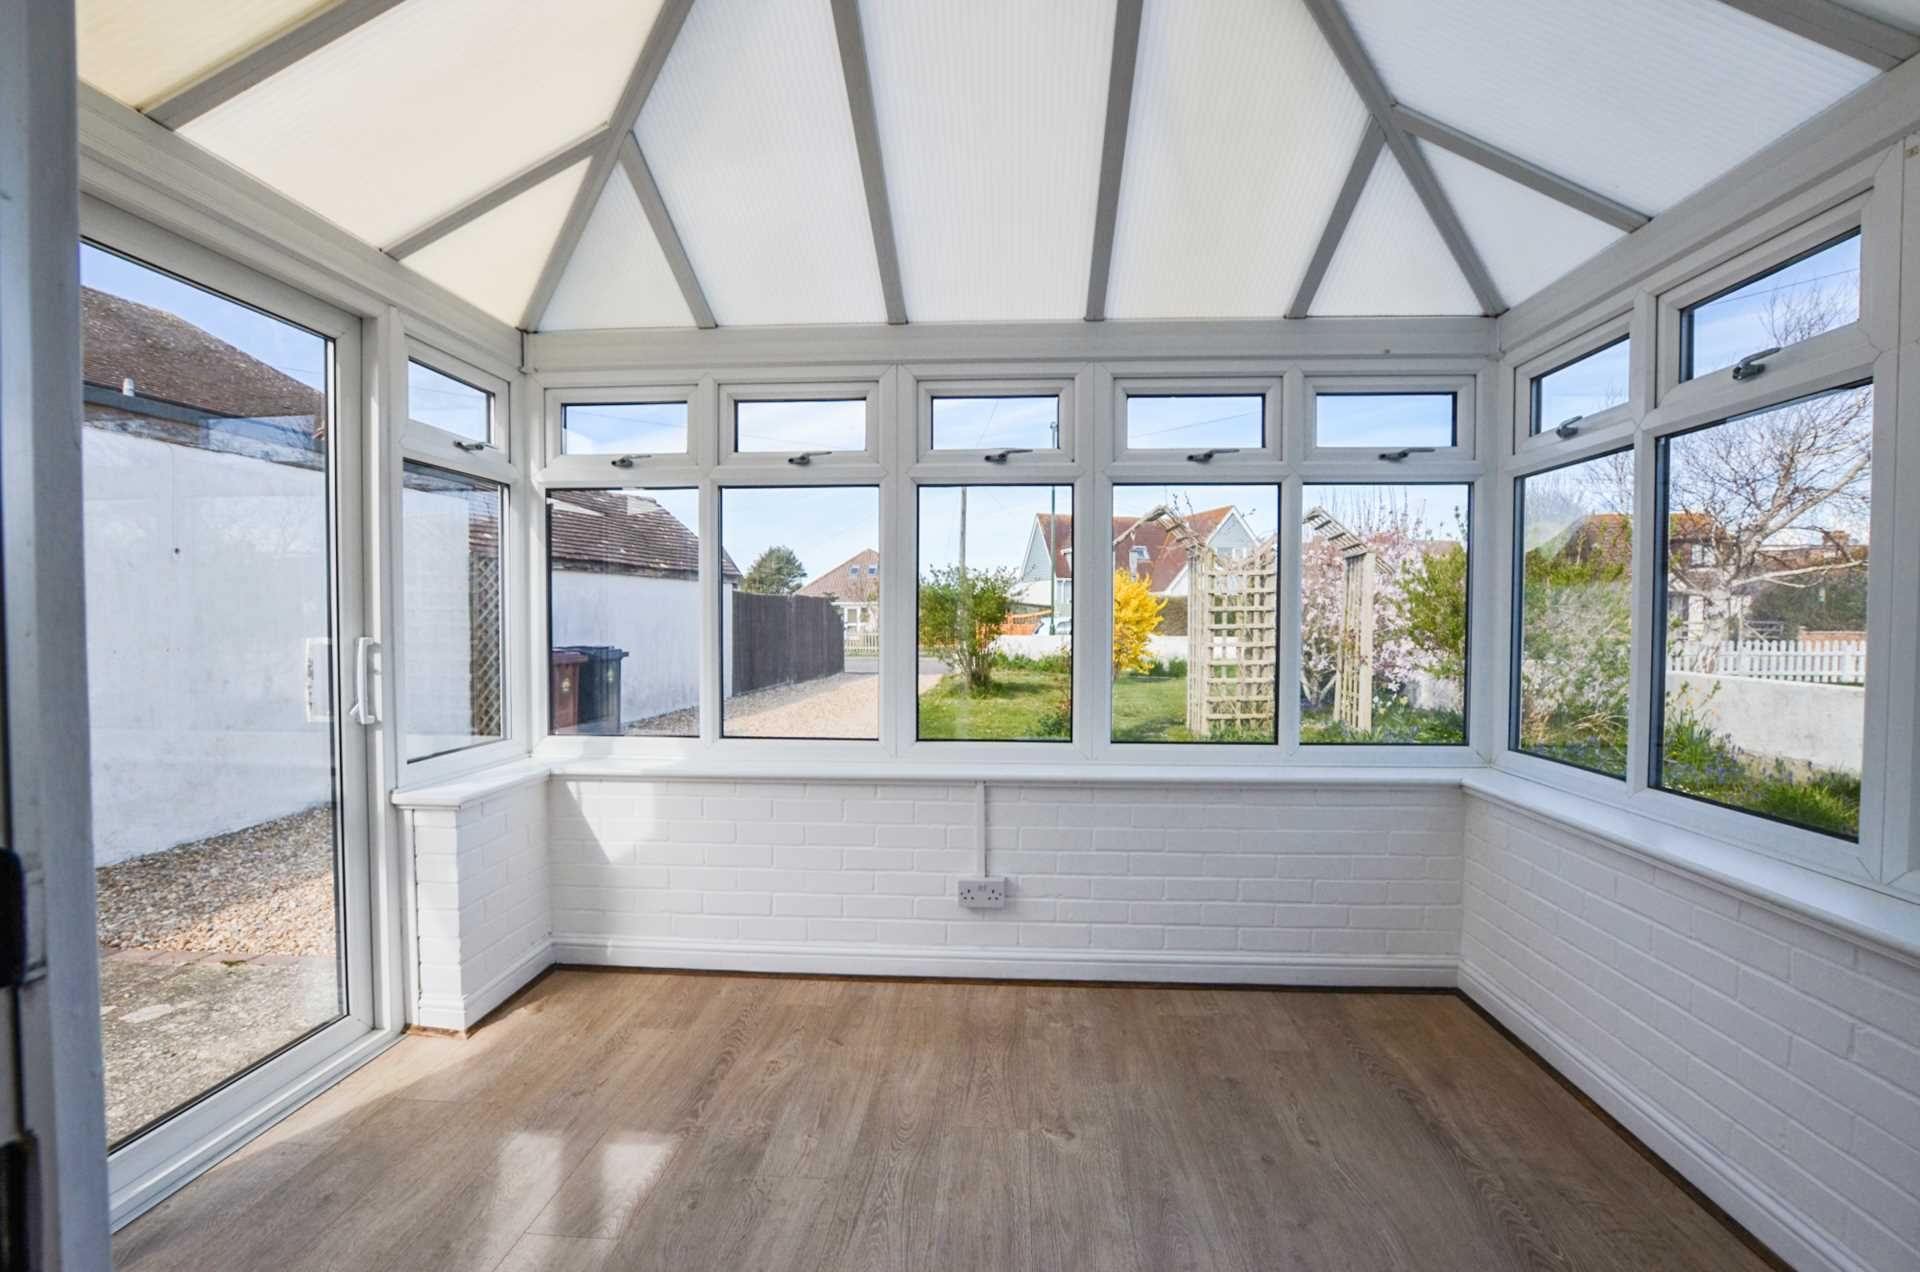 Little Rumford, Russell Road, West Wittering, PO20 8EF, Image 5